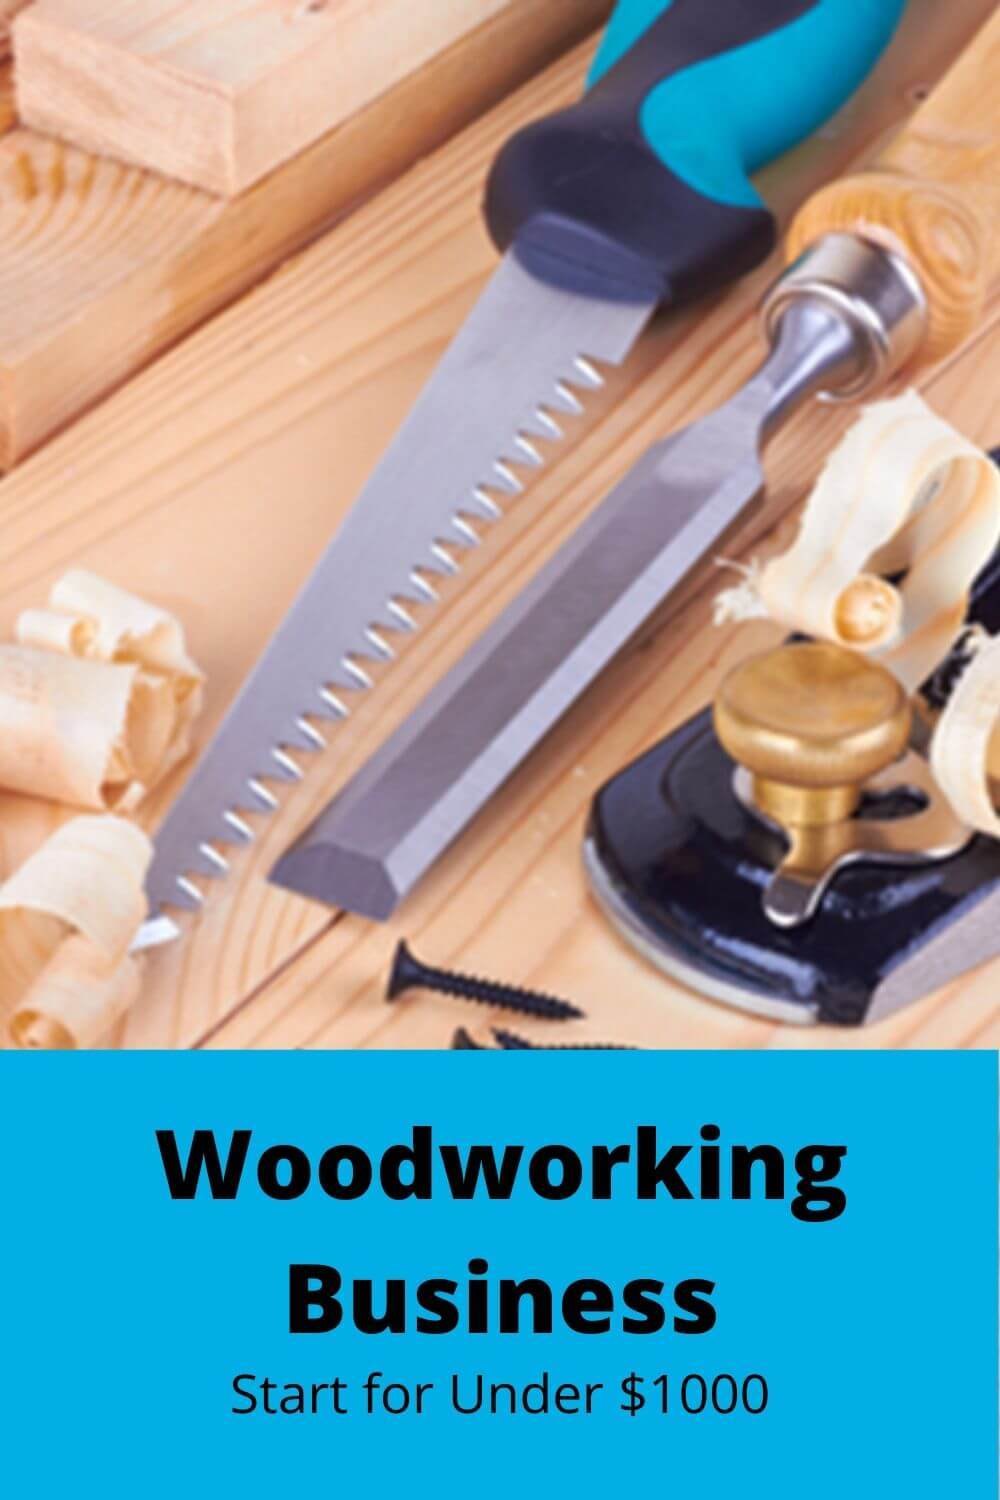 Woodworking business idea